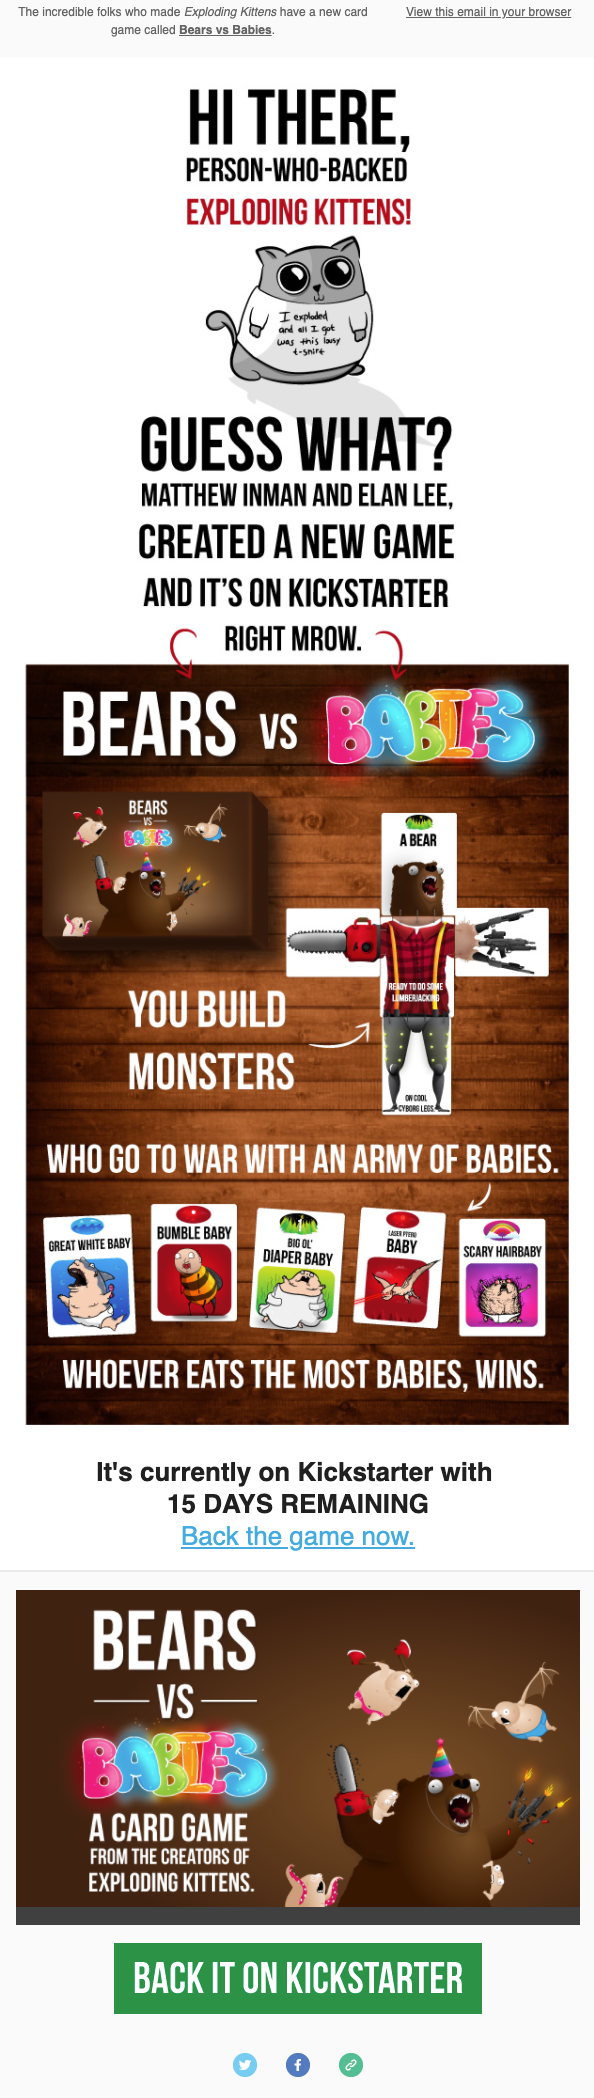 New game announcement email from the Oatmeal.